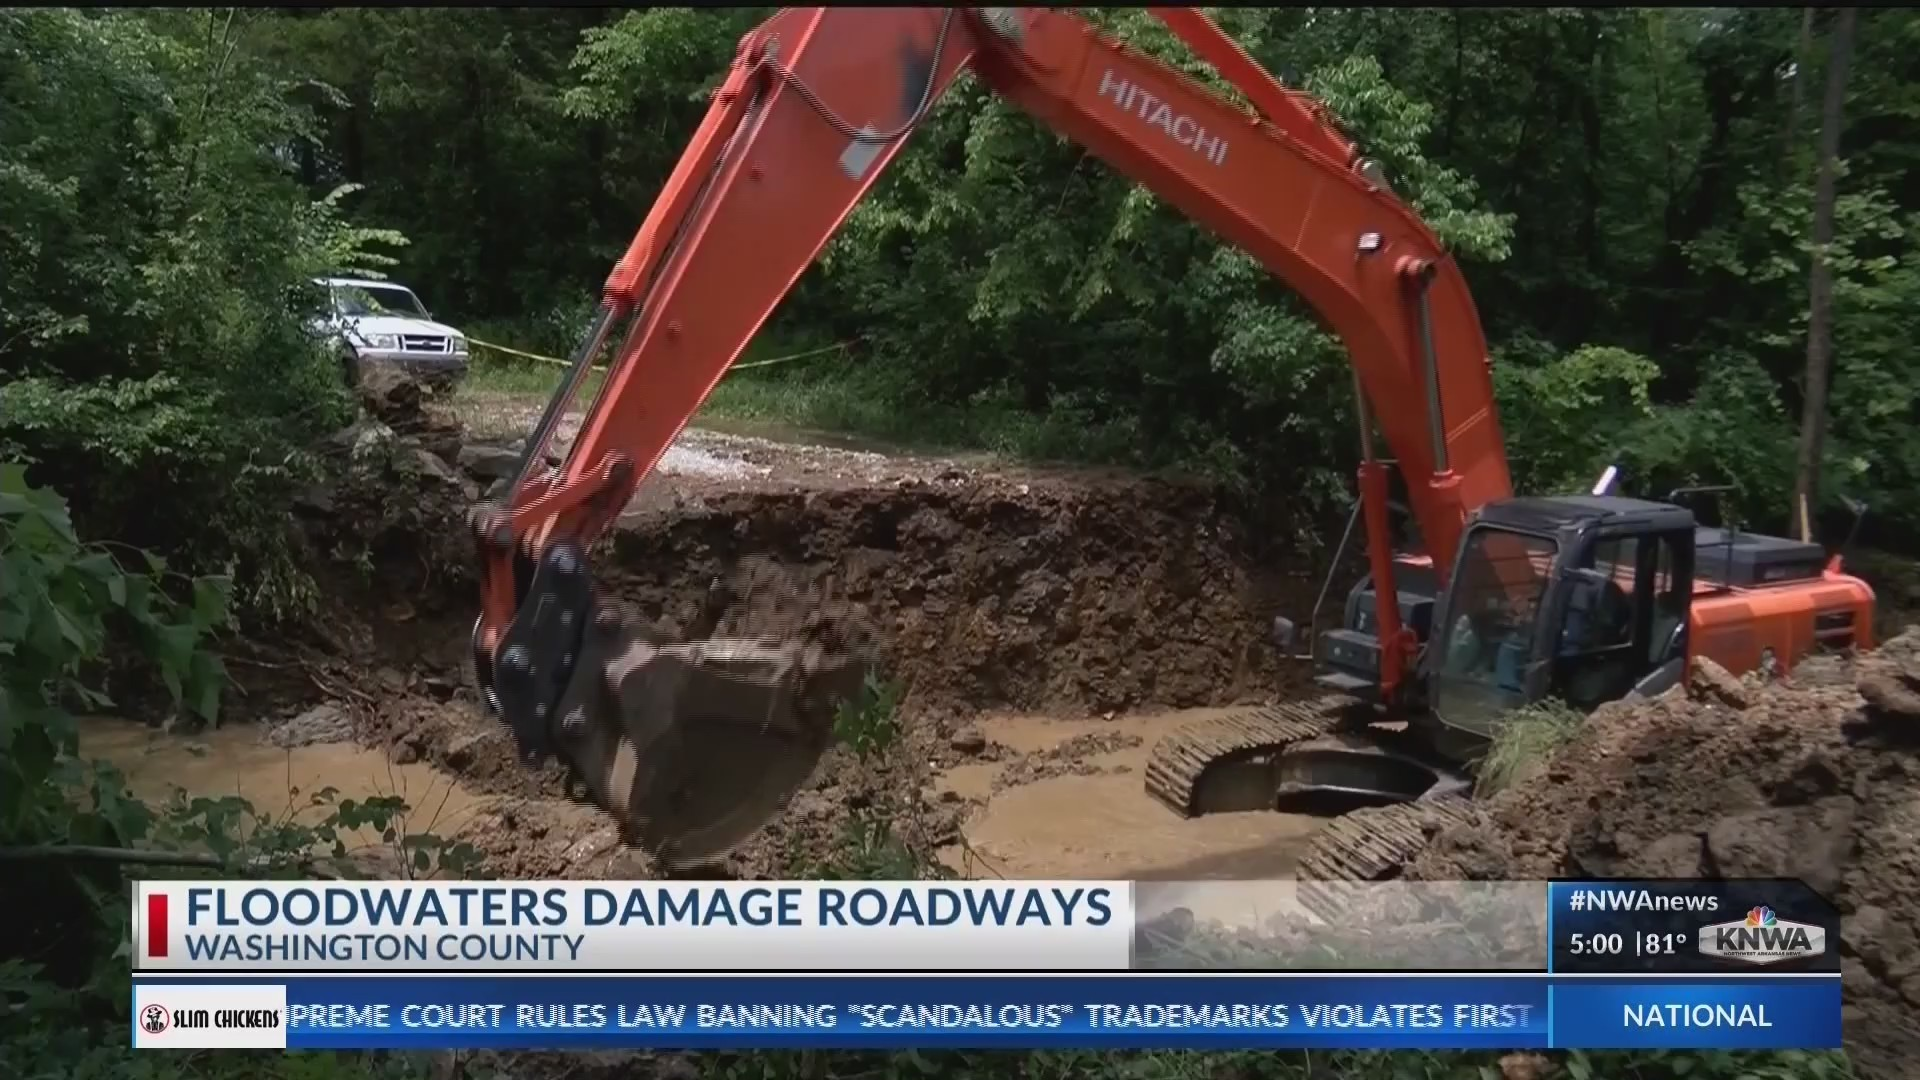 Floods damage roads in Washington County (KNWA)